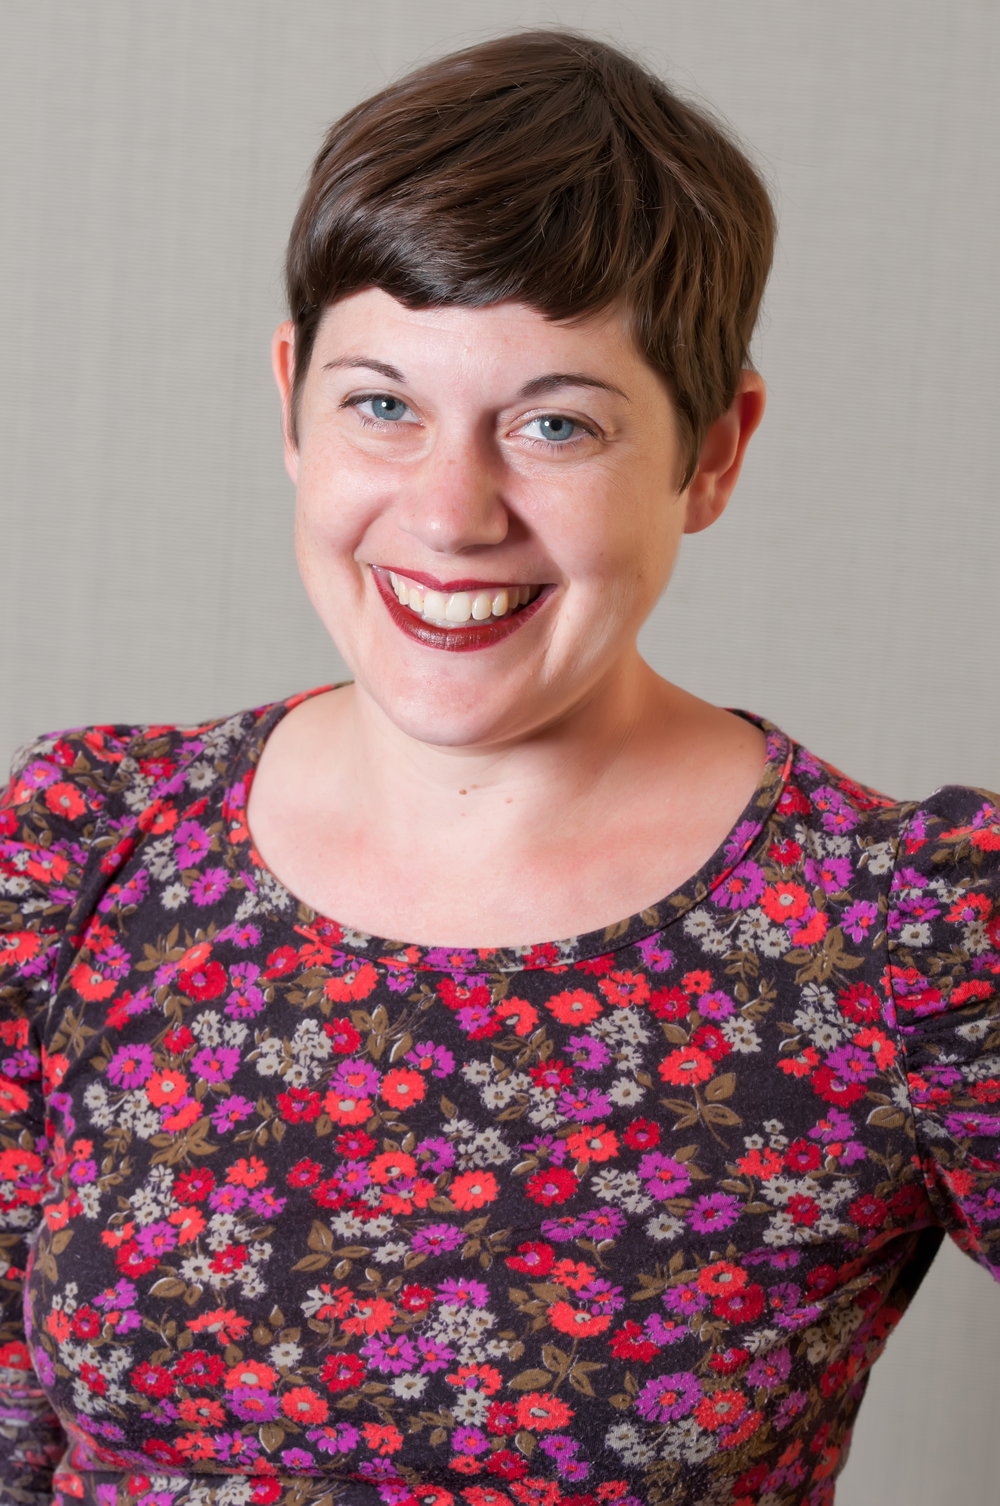 Jessie Starbuck is an art teacher at Battle High School.   JStarbuck@CPSk12.org  573-214-3300